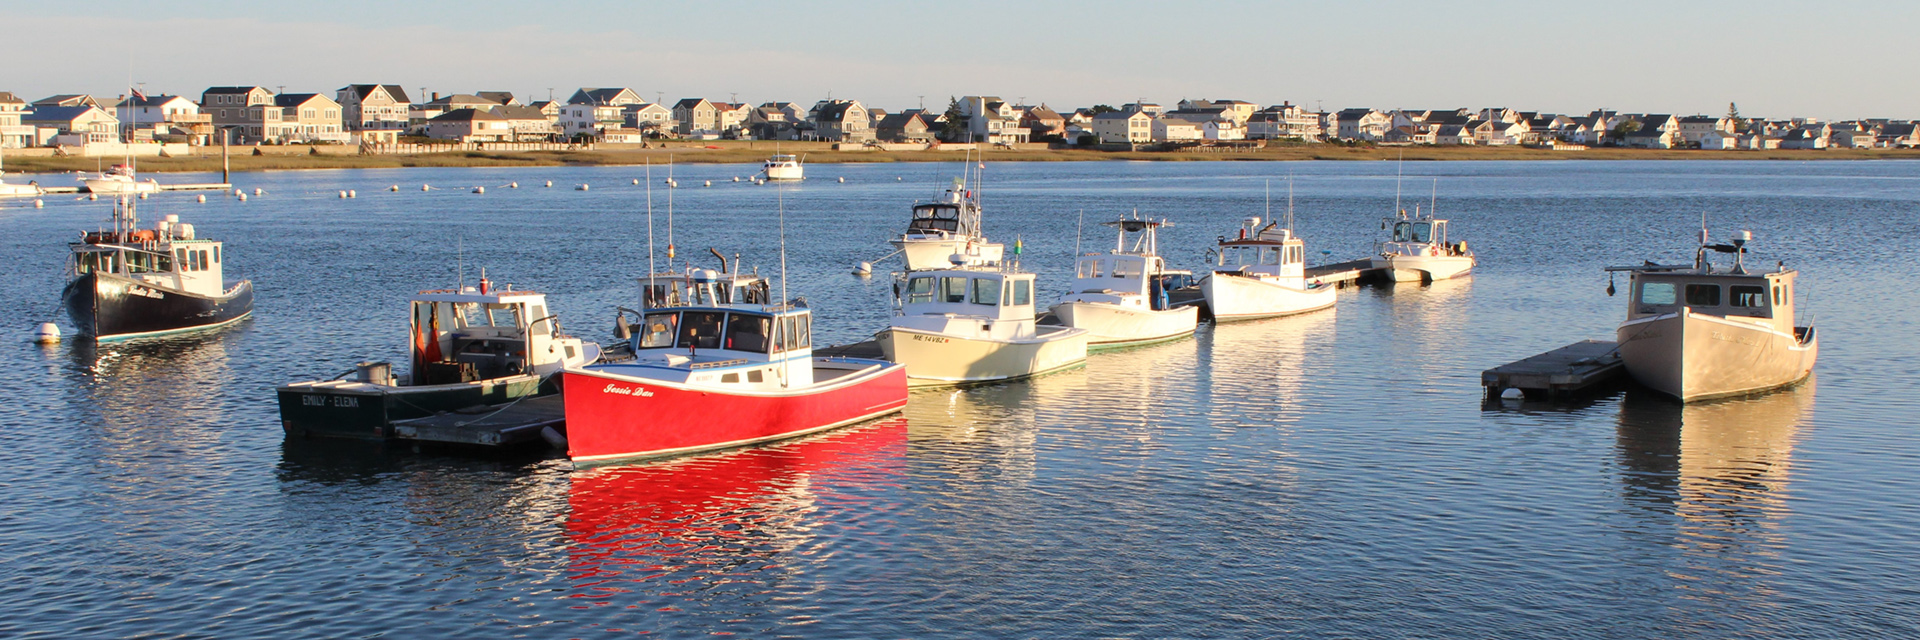 wells-harbor-red-boat-Mike-Fraboni.jpg